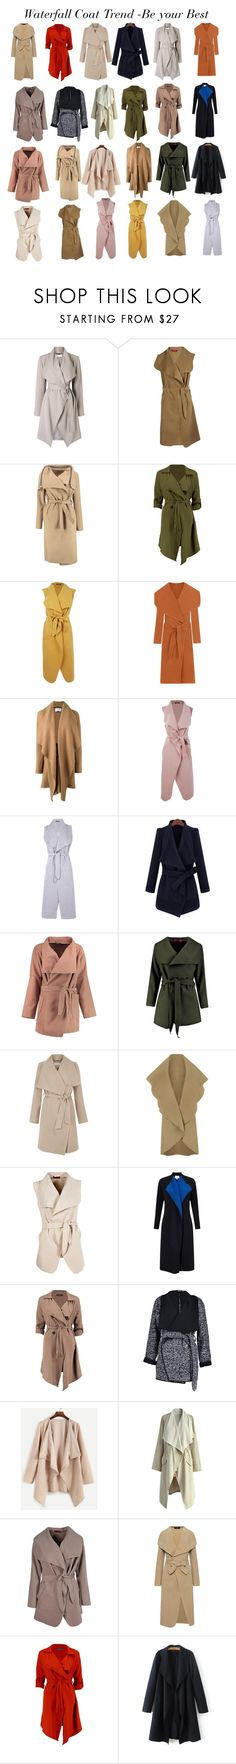 """Waterfall Coat  Trend"" by gabriela2105 ❤ liked on Polyvore featuring Jacques Vert, Boohoo, WearAll, Harris Wharf London, Hobbs, EAST and Chicwish"